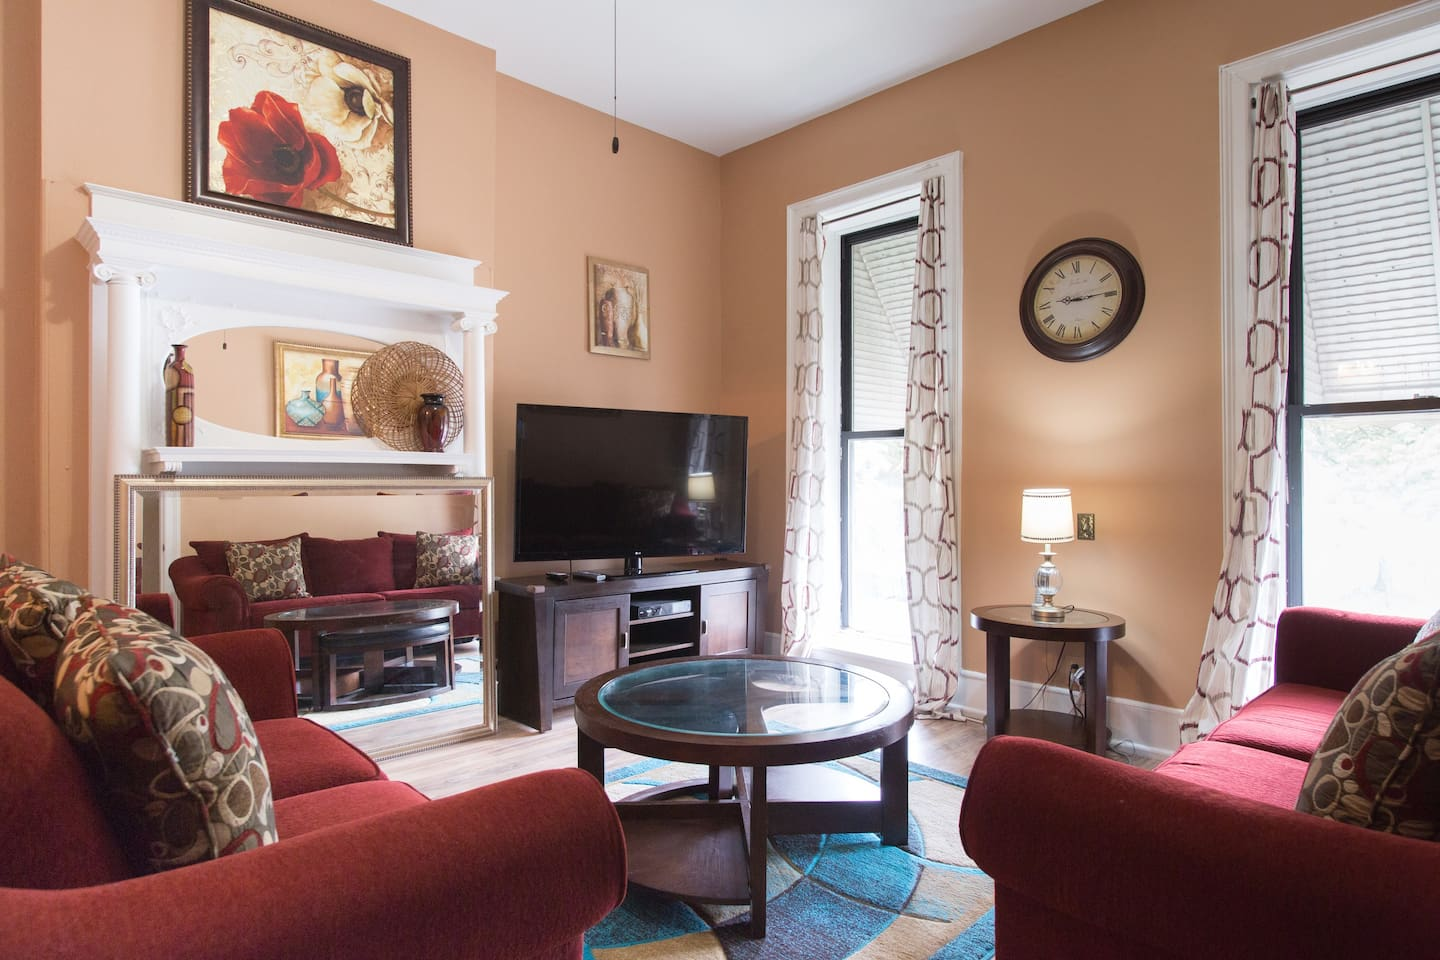 """Comfy sofa, loveseat and 55"""" HDTV will make you feel at home. Relax after enjoying everything that the great city of Chicago has to offer."""